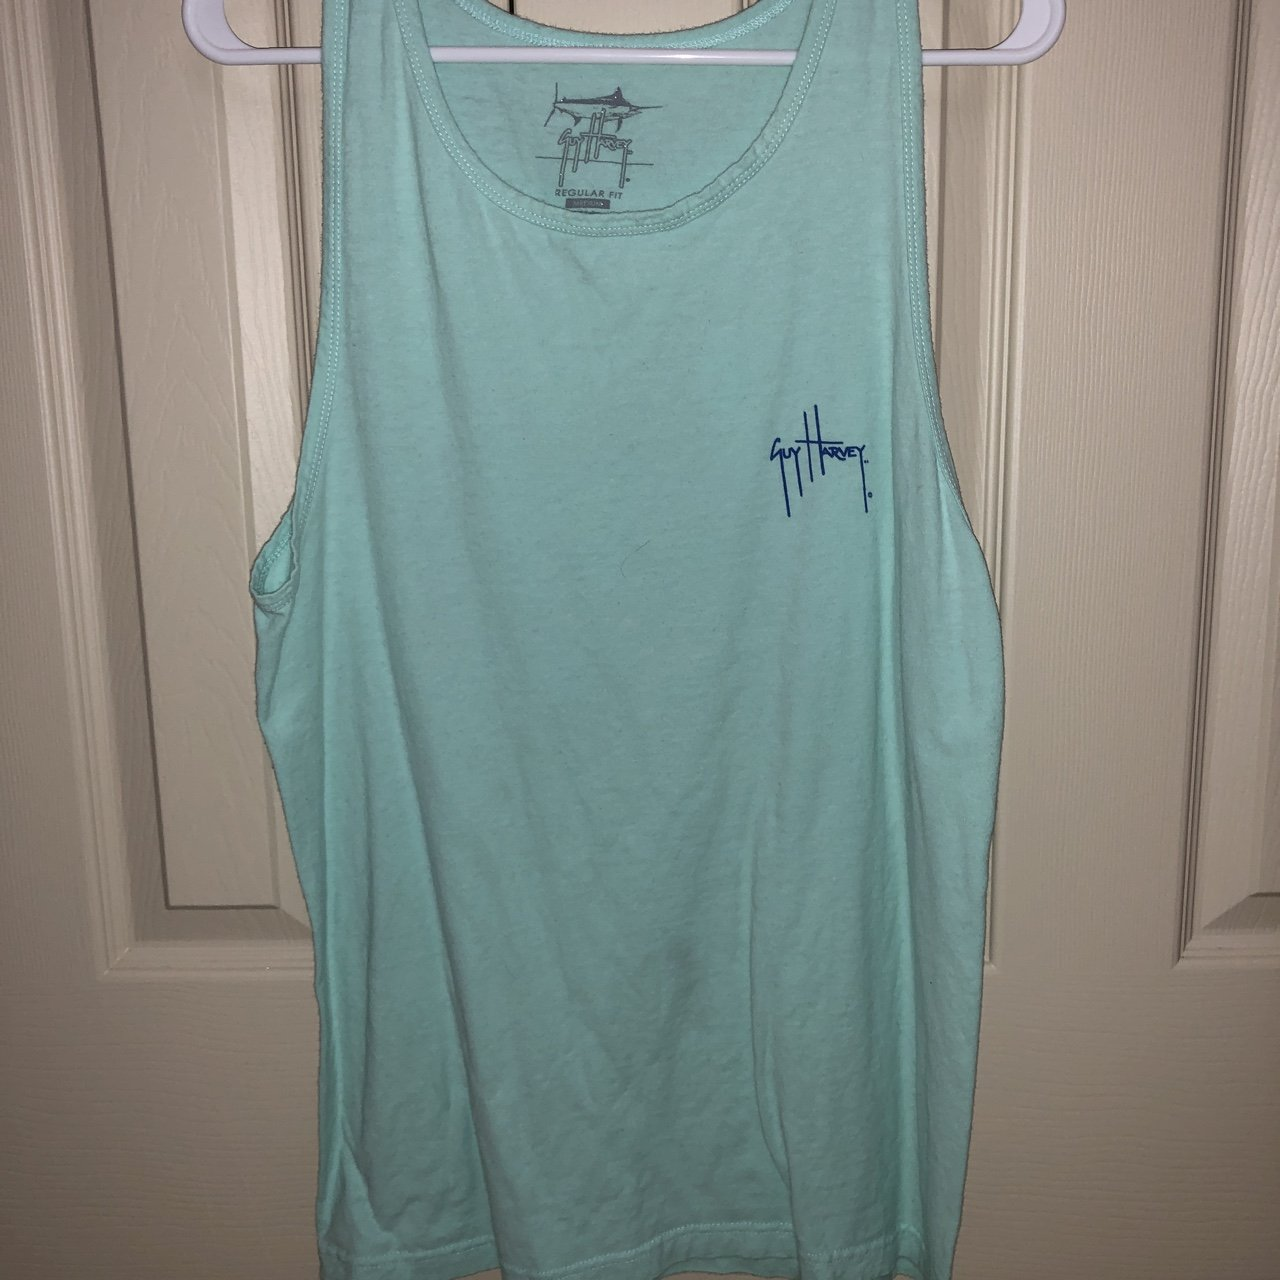 94f48595e1b9b4  ahbh23. 9 months ago. United States. Guy Harvey tank top. Only worn a few  times. In great condition.